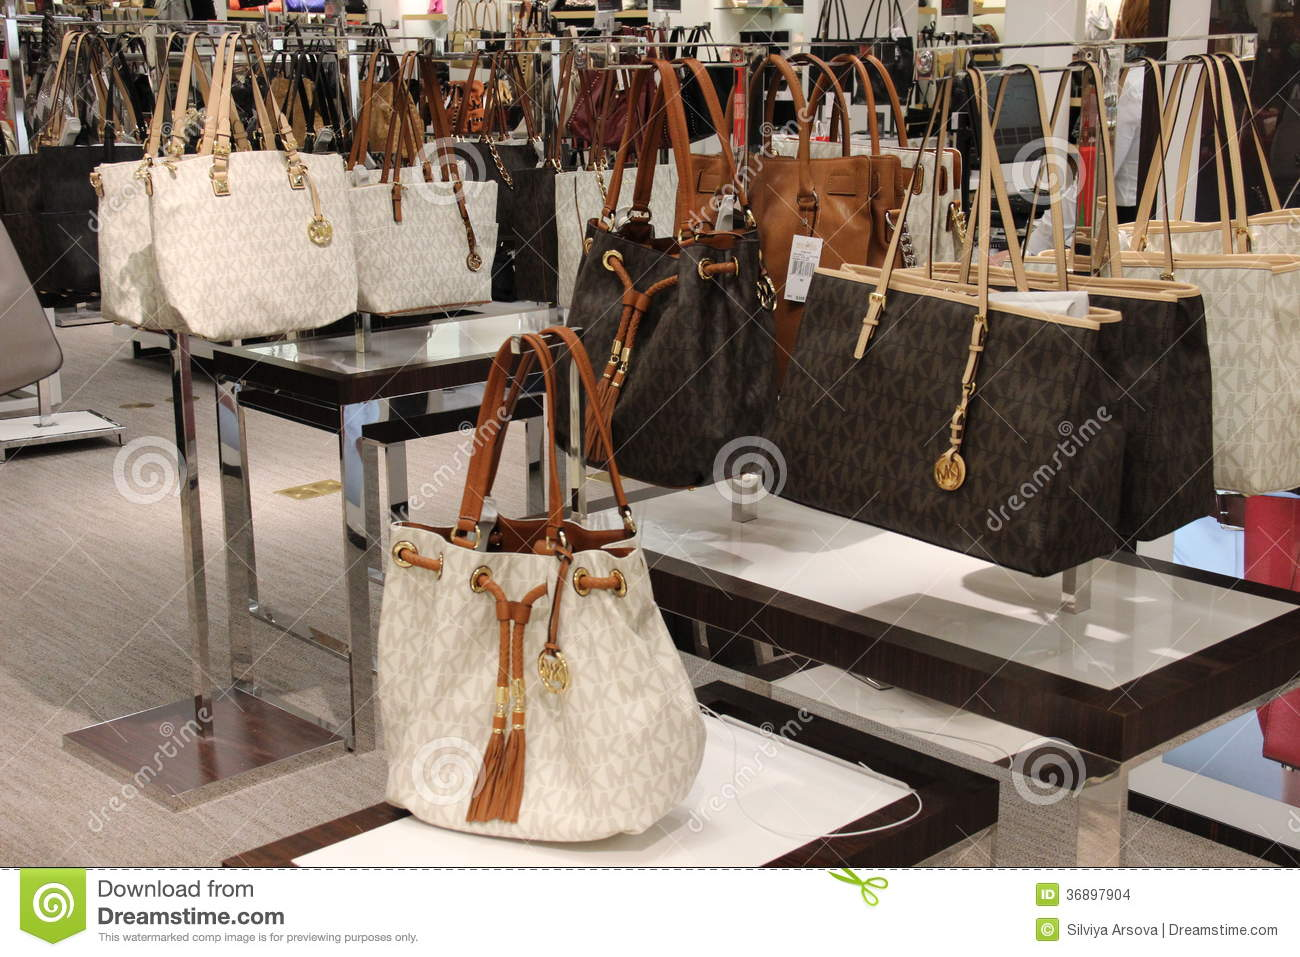 a91390e8d466 Michael Kors Handbag Fashion Store Editorial Stock Image - Image of ...